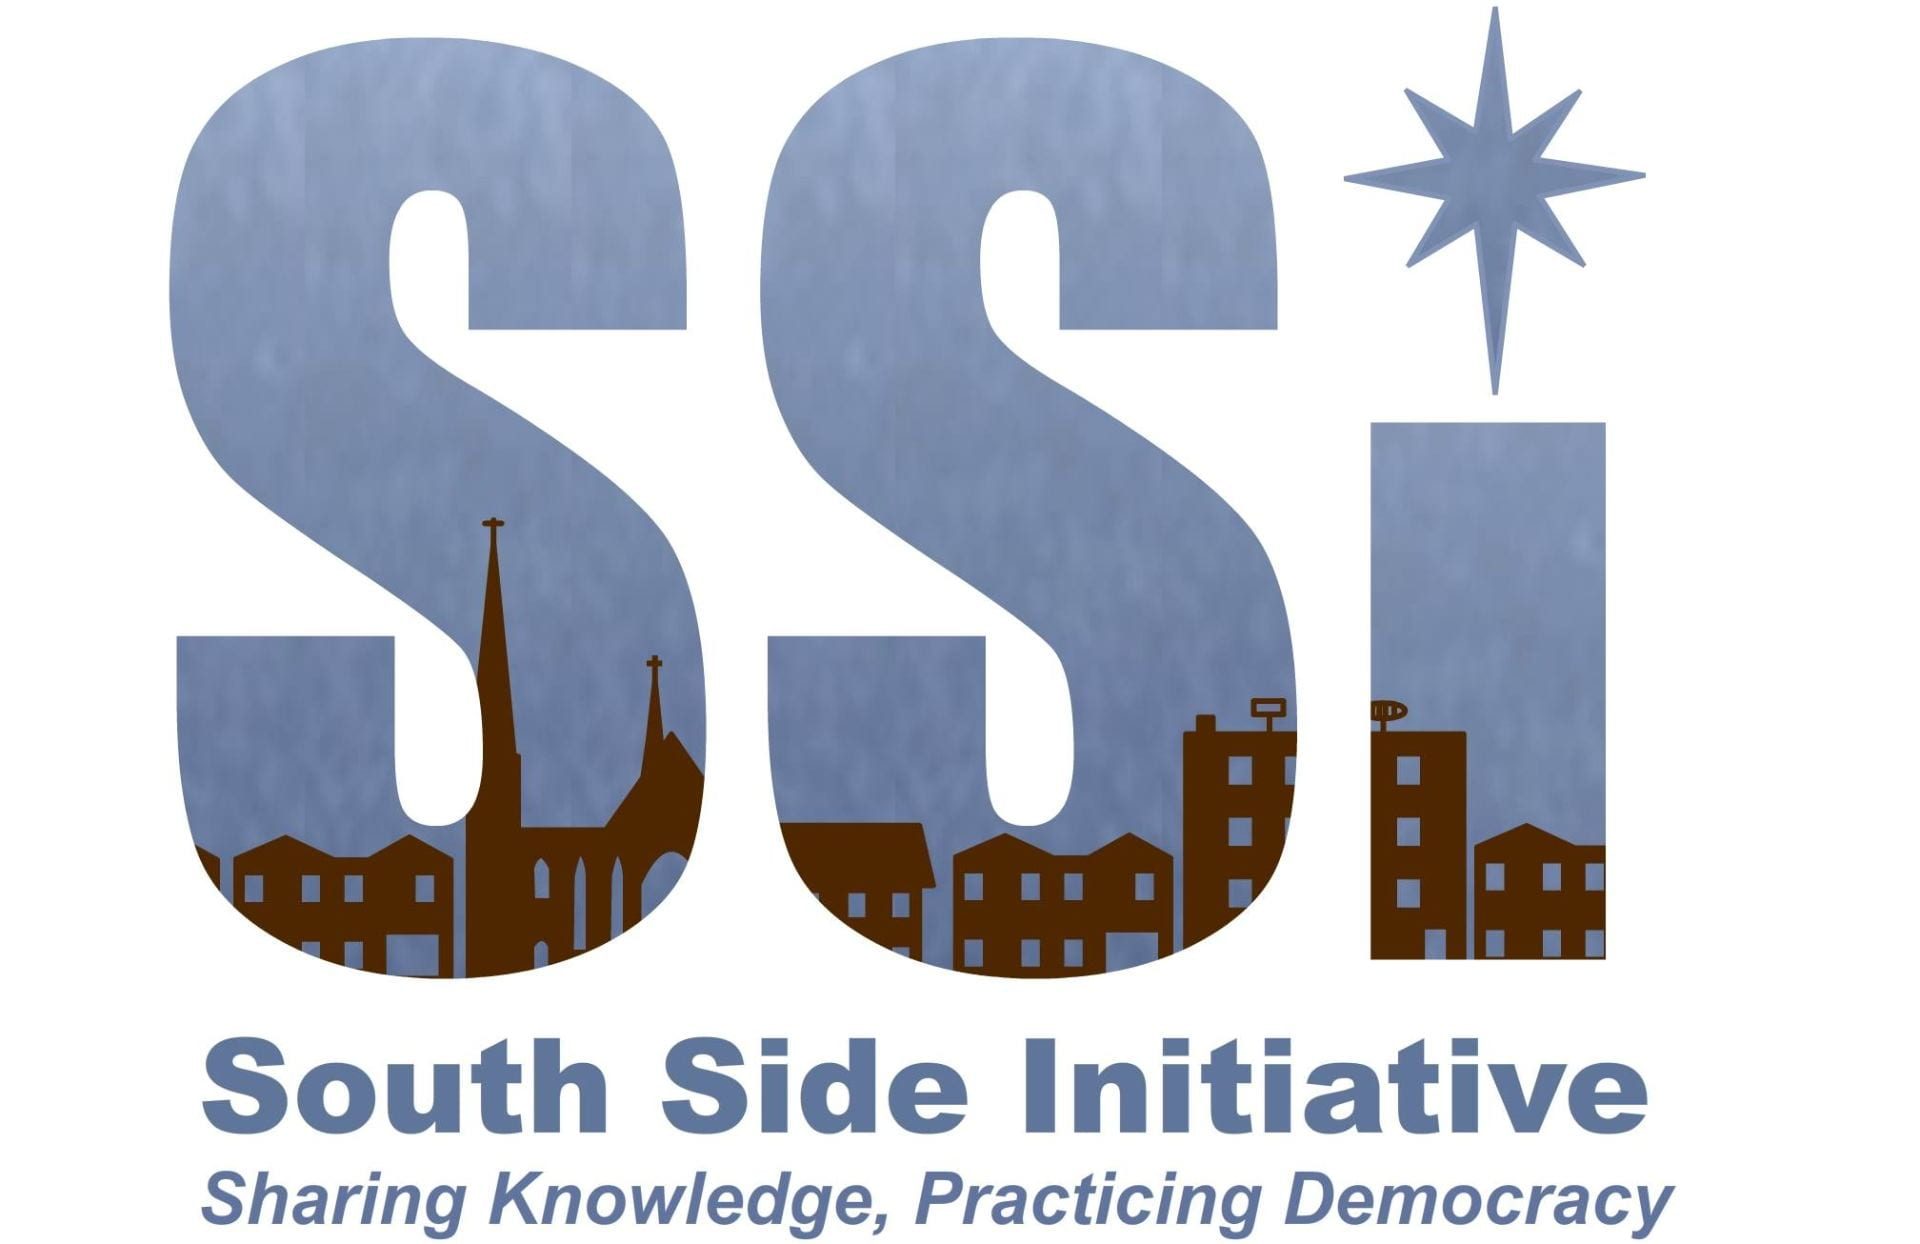 South Side Initiative